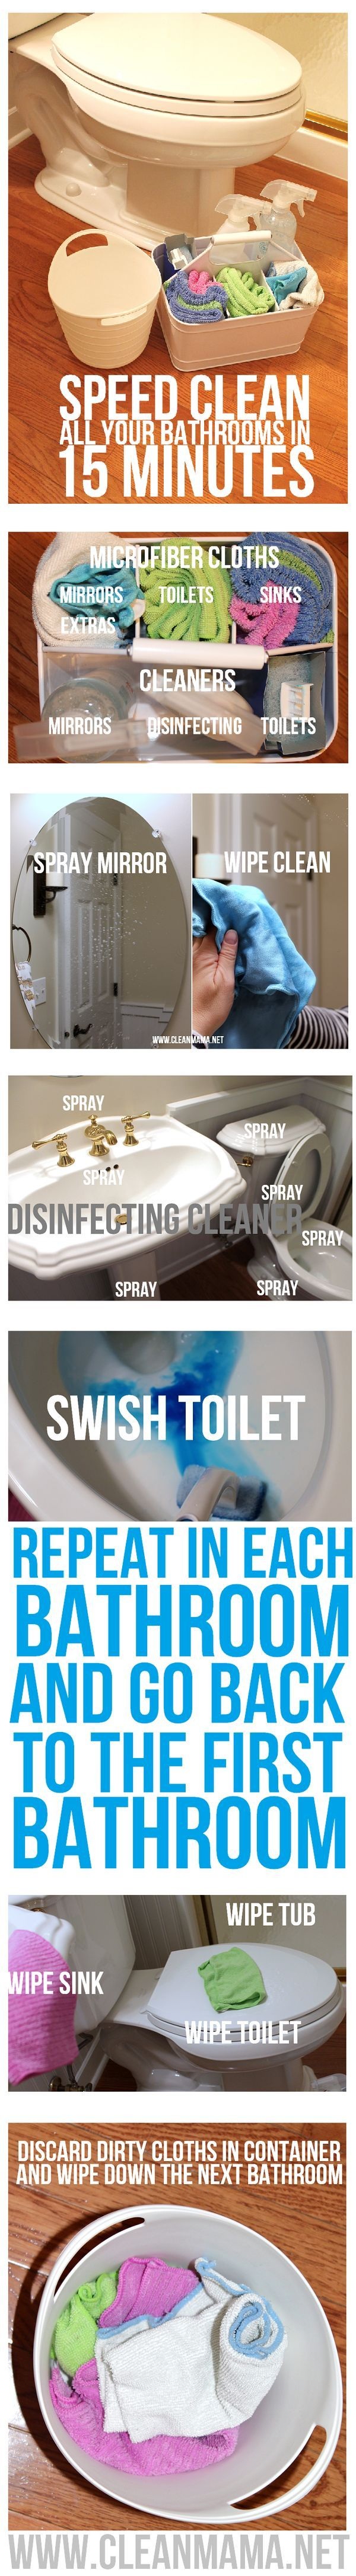 best cleaning images on pinterest nursing schools schools for